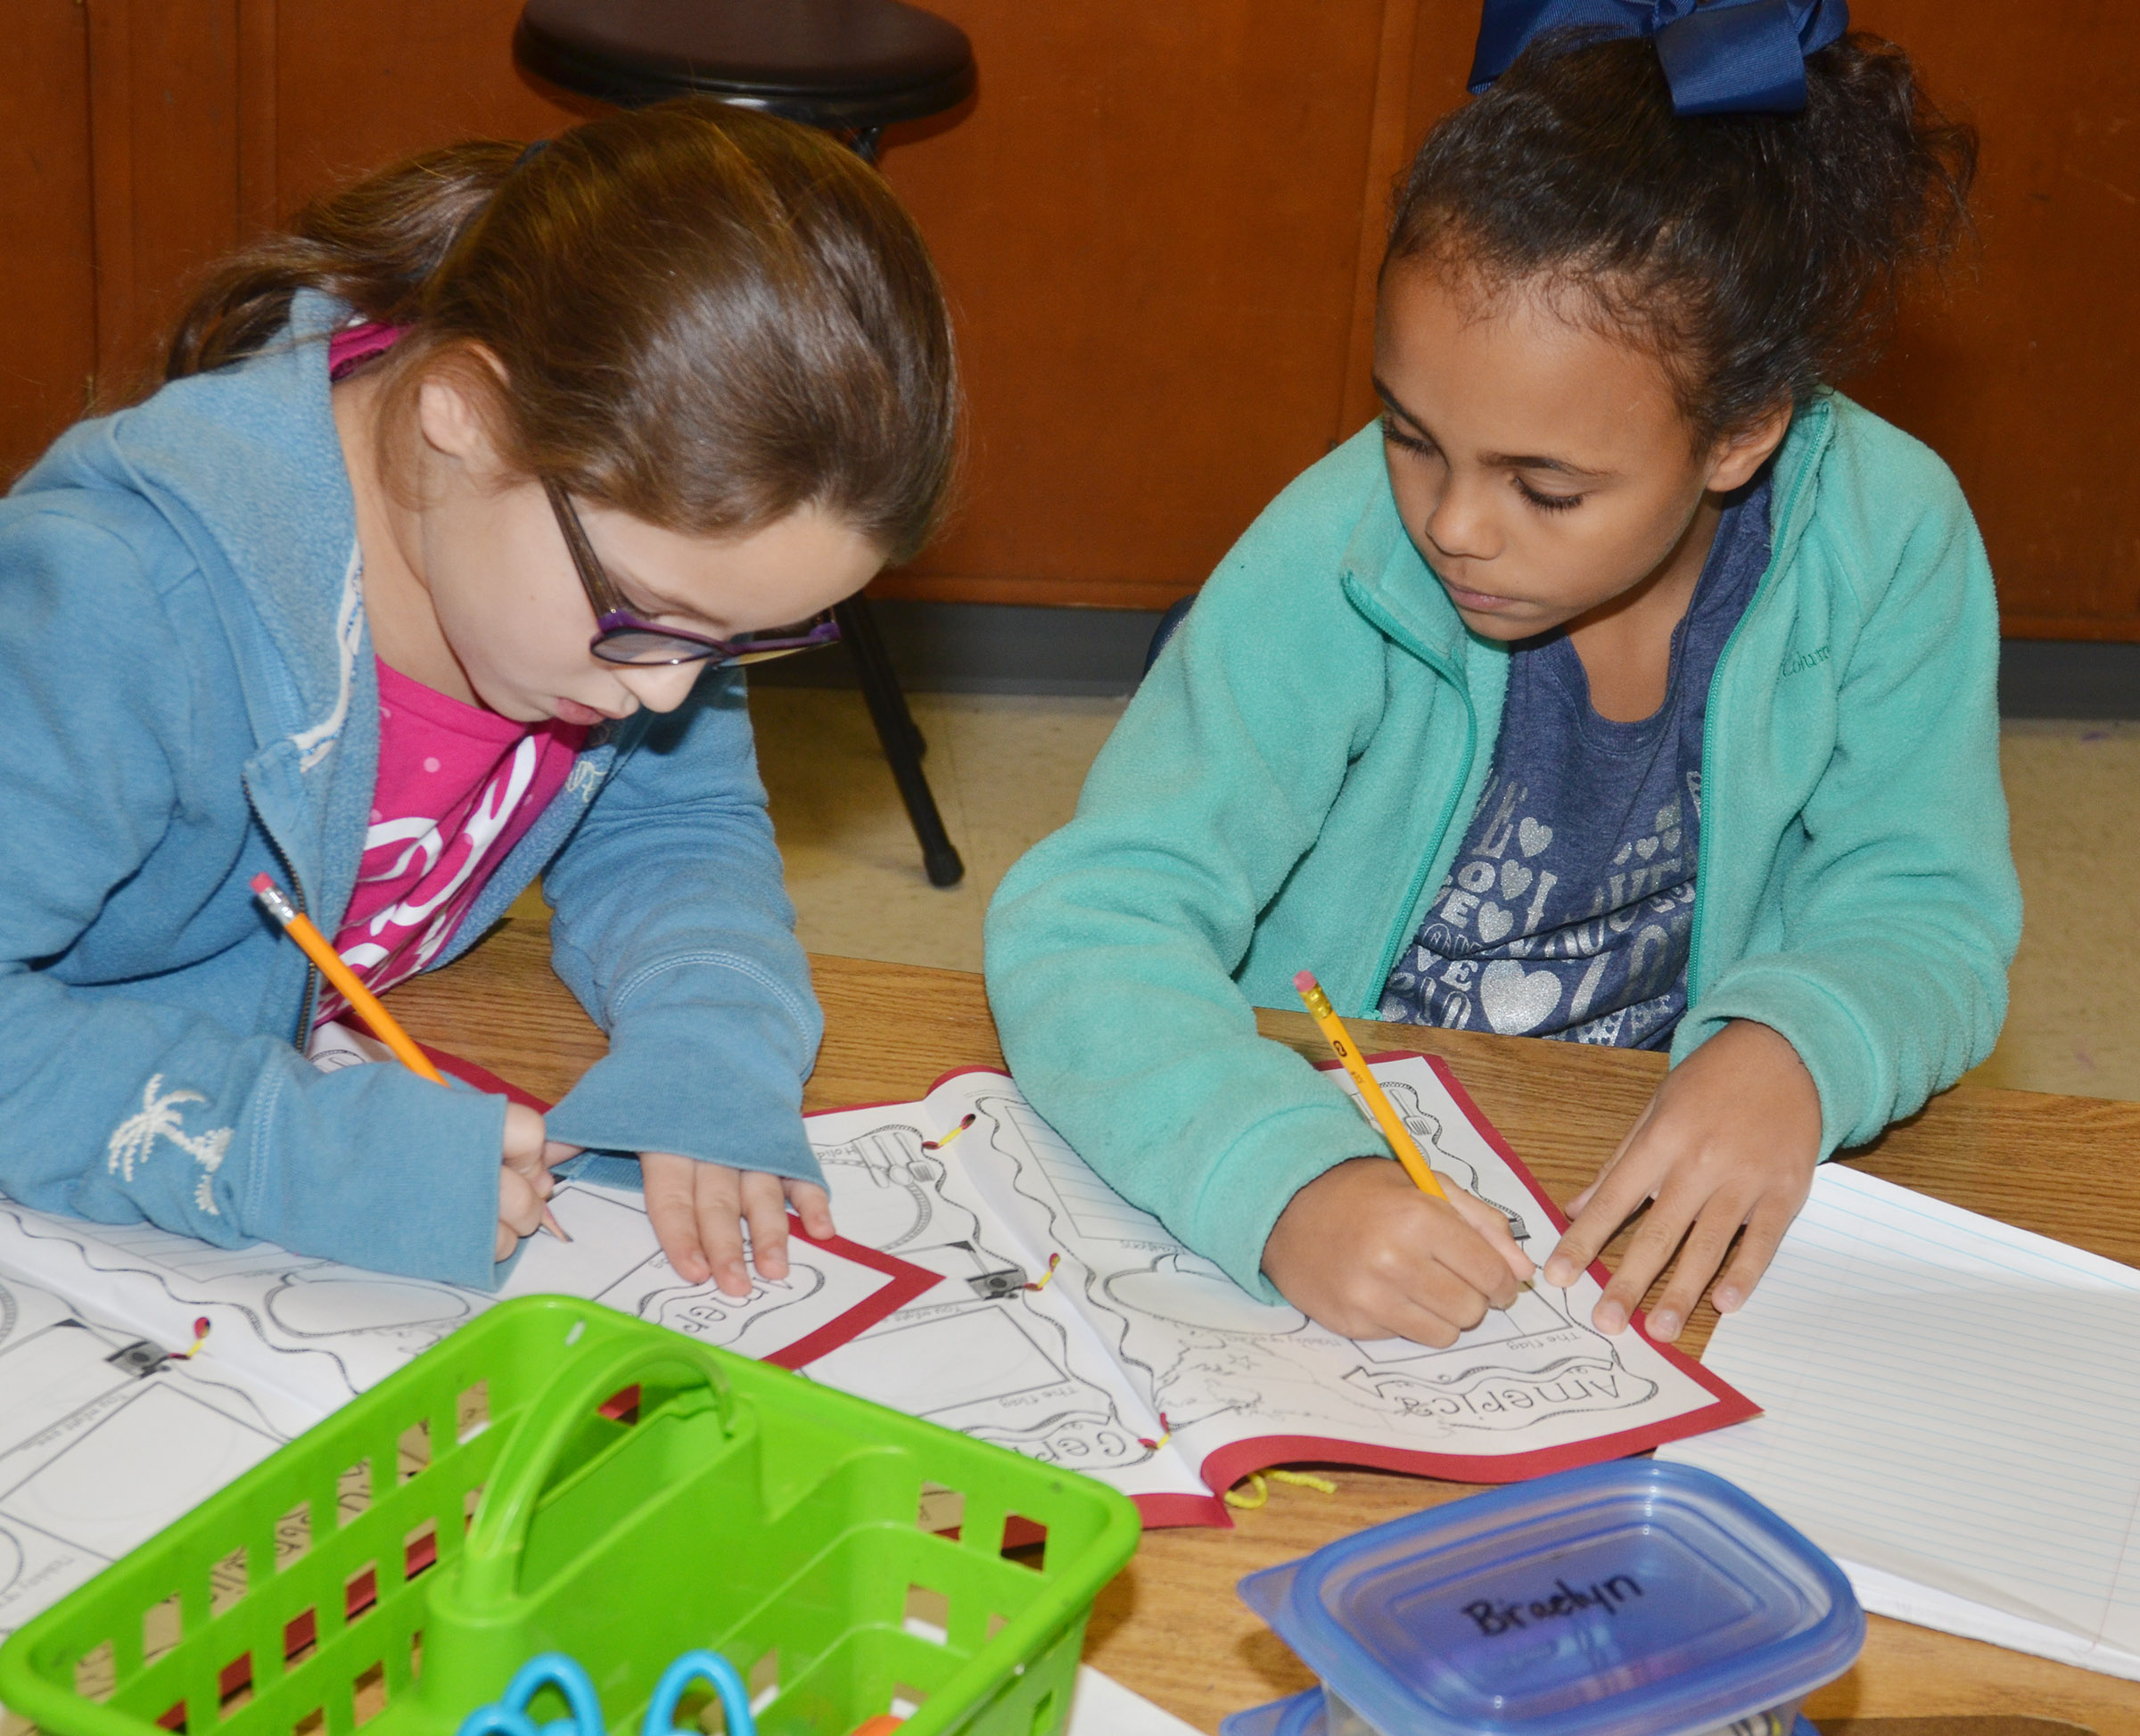 CES second-graders Keely Rakes, at left, and Braelyn Taylor draw in their Christmas tradition books.